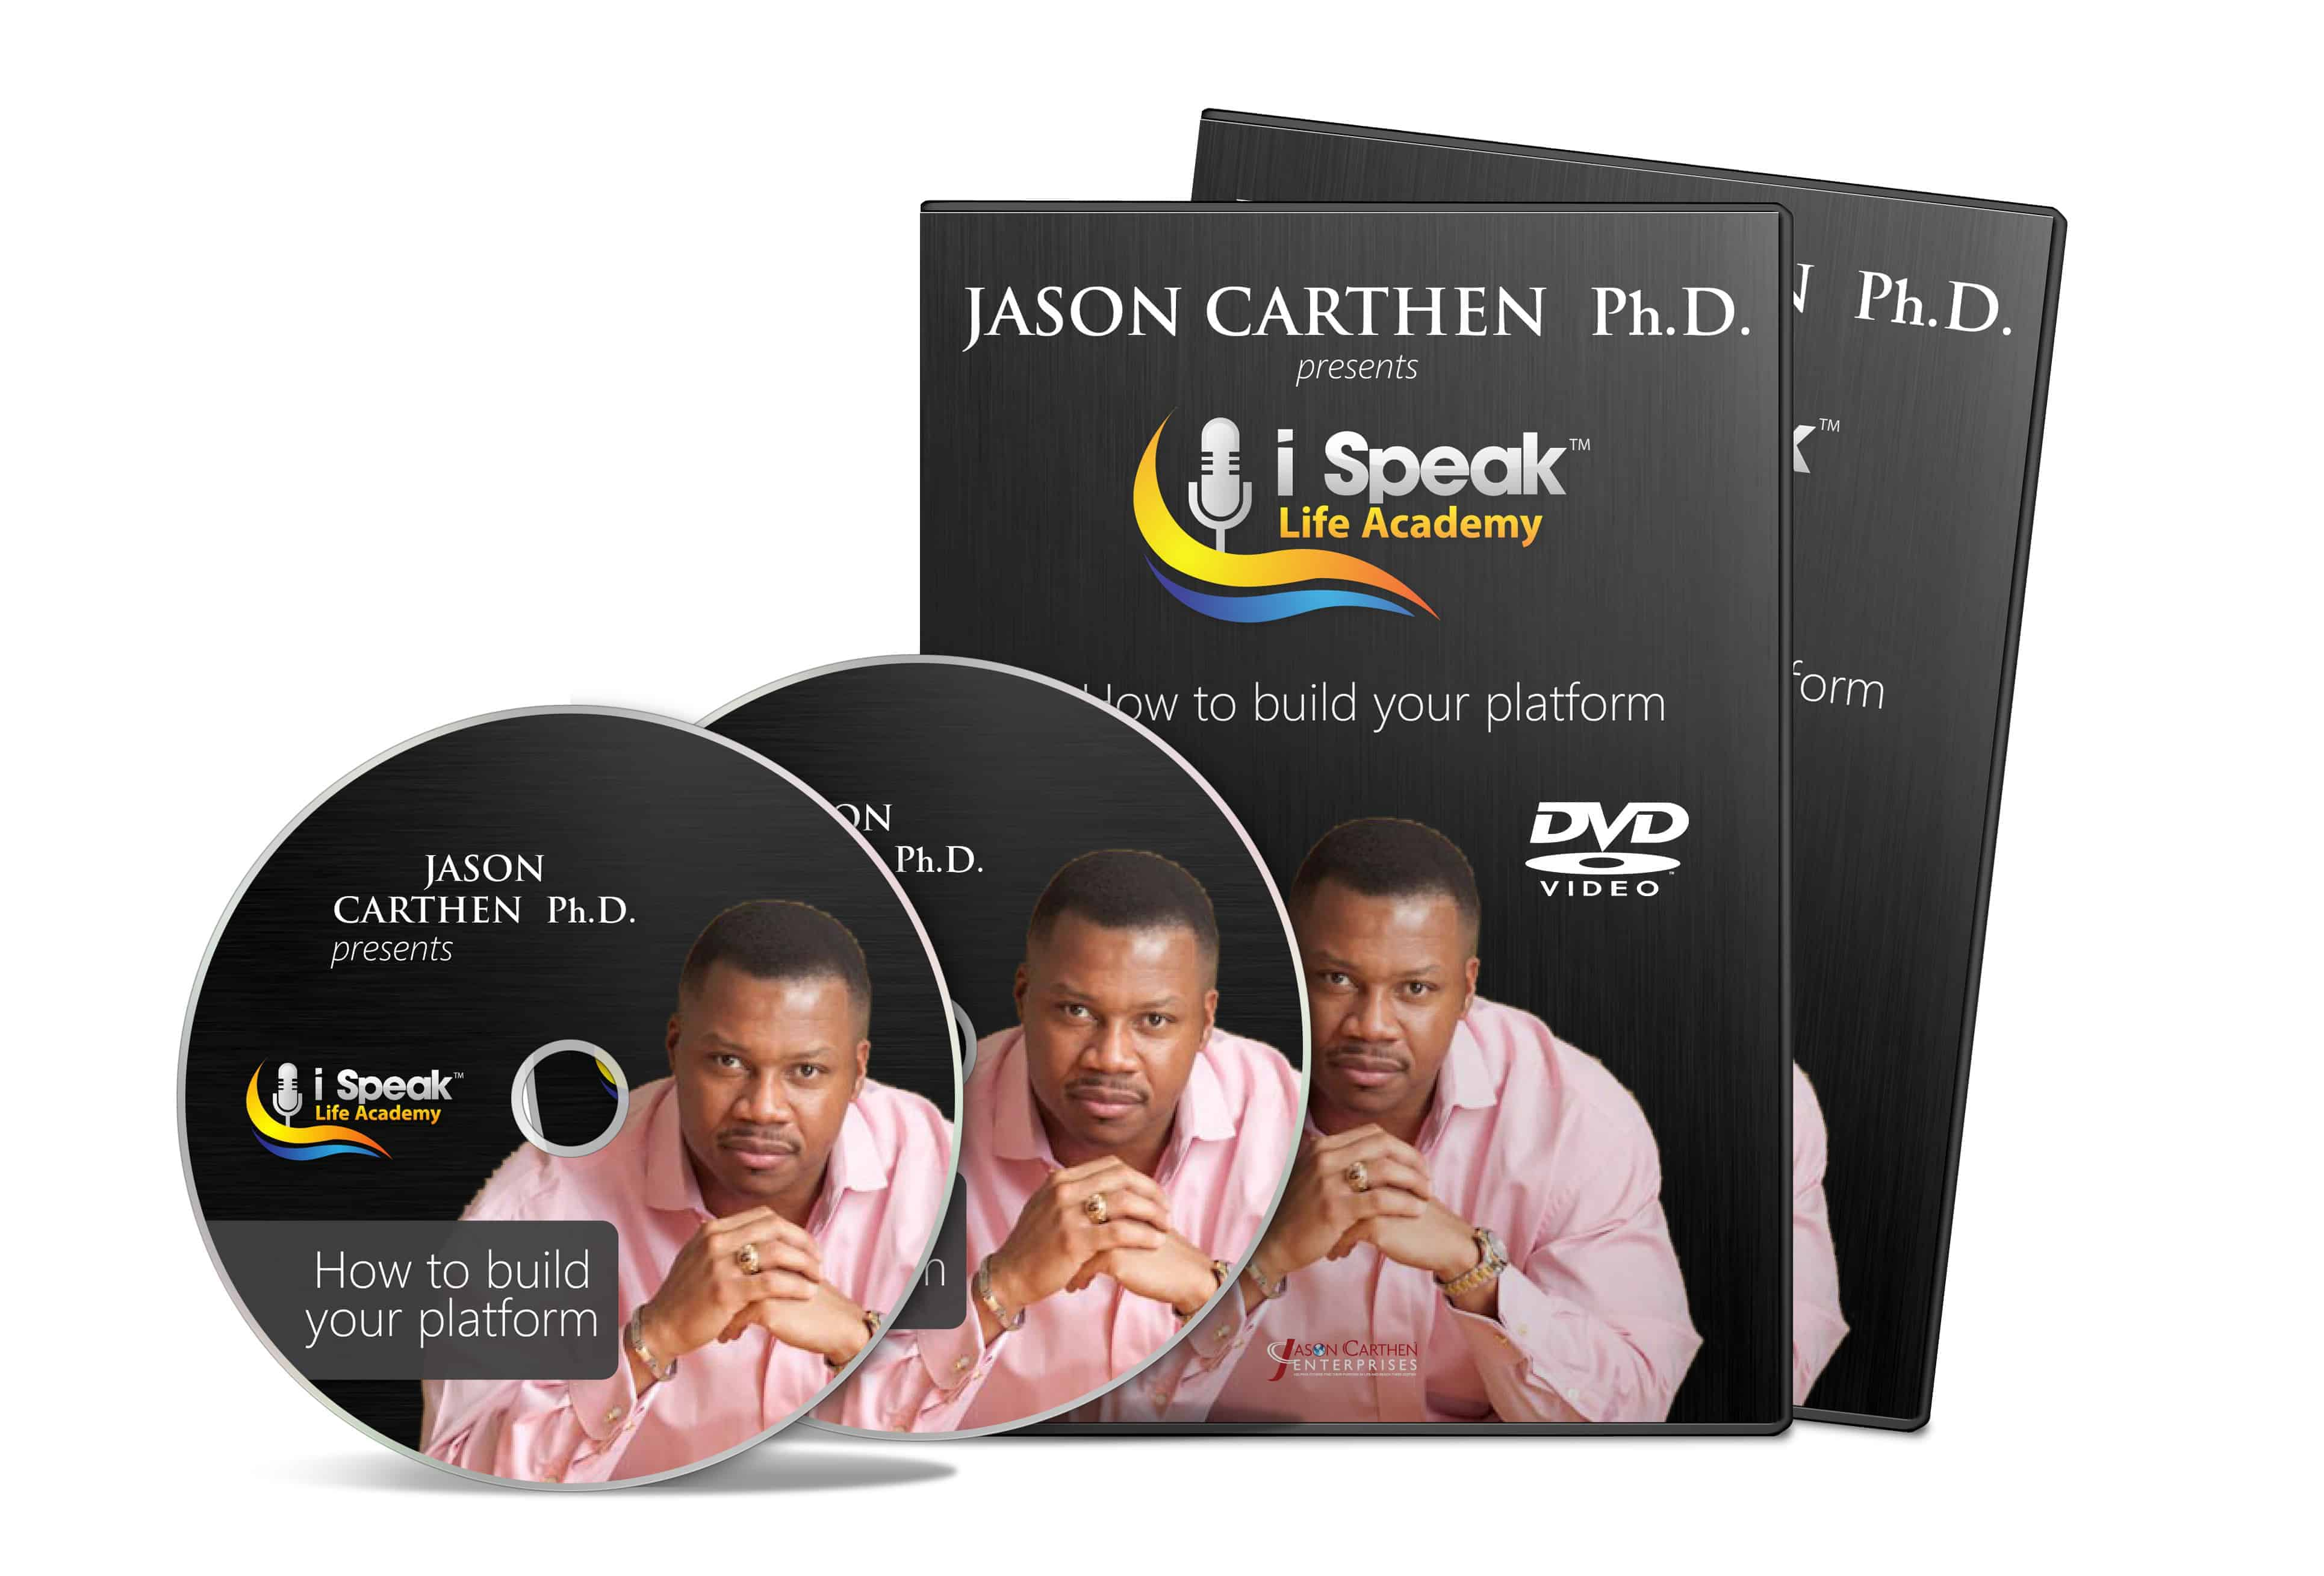 Dr. Jason Carthen: How to Build and Master Your Platform DVD